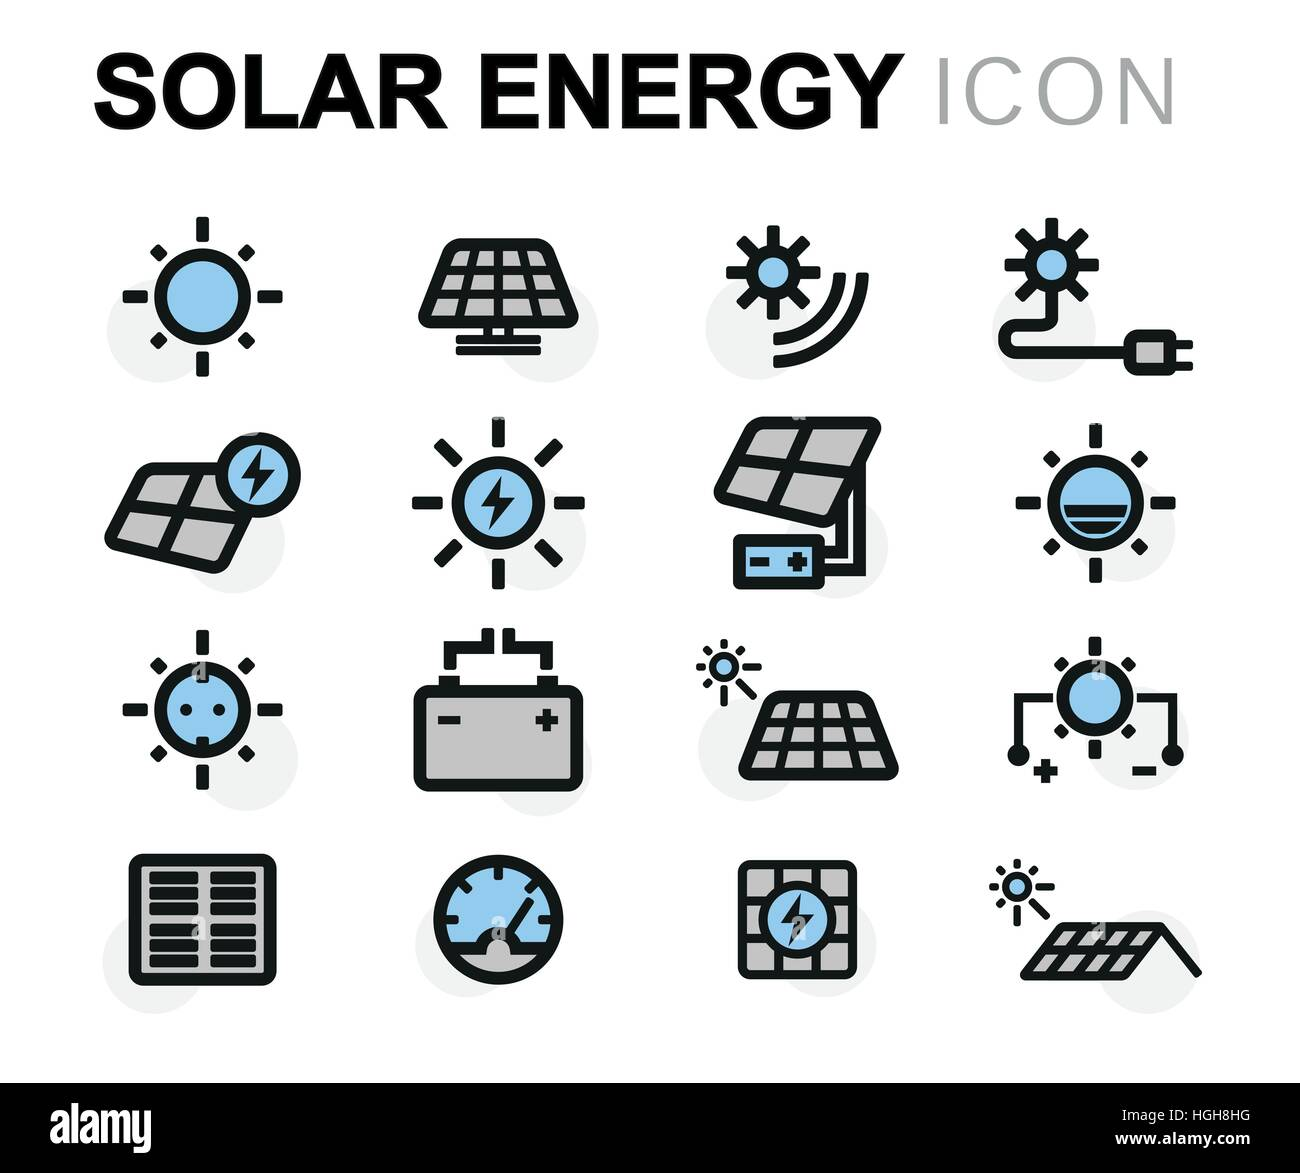 vector flat solar energy icons set stock vector art illustration vector image 130687020 alamy. Black Bedroom Furniture Sets. Home Design Ideas